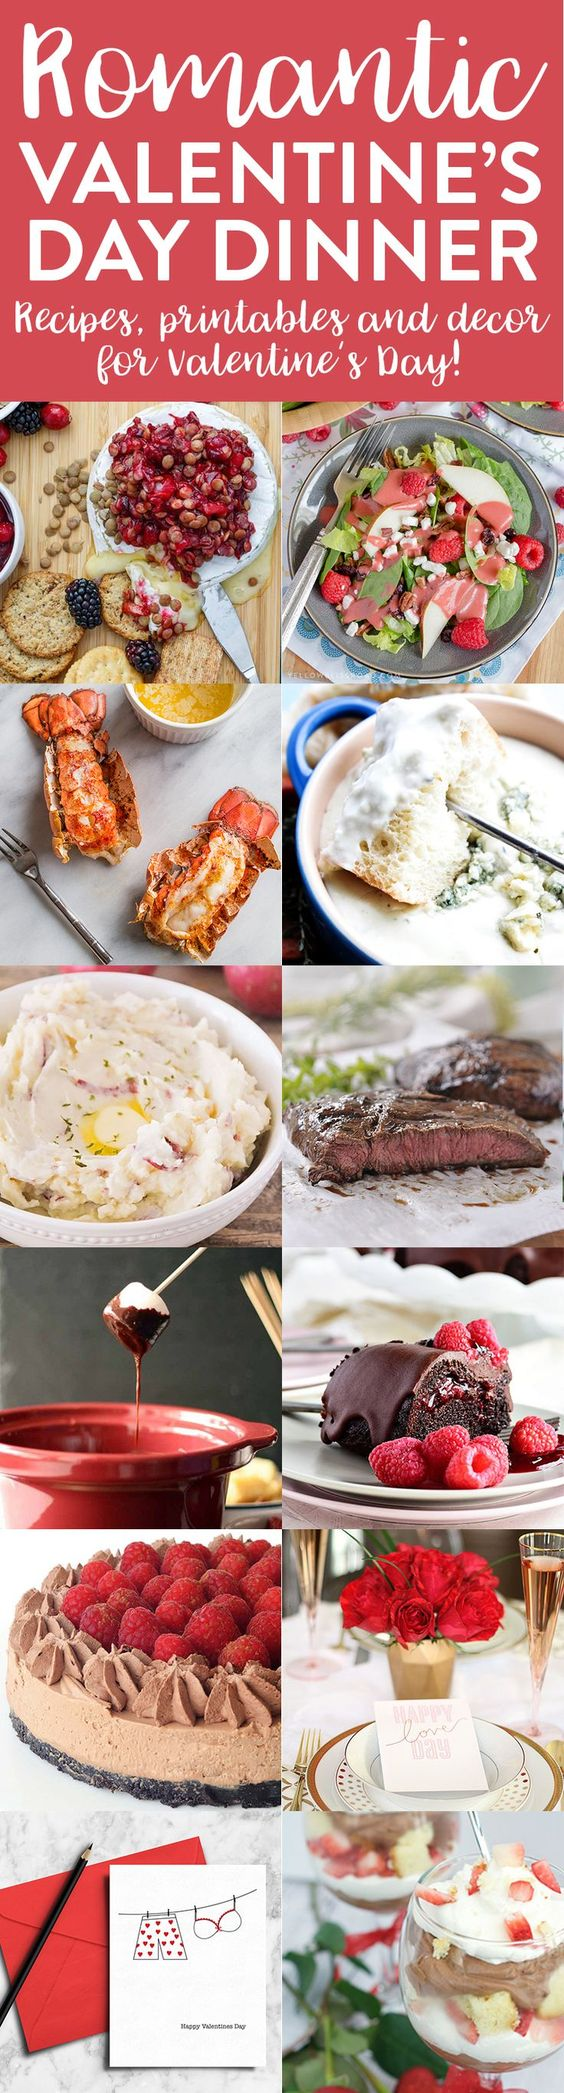 This Valentine's Day Meal Plan has got everything you need to make Valentine's Day a night to remember. From appetizers, to desserts, to printables and party ideas, we've got you covered! Enjoy our Valentine's Day Meal Plan! Raspberry Pear Salad with Homemade Raspberry Vinaigrette from Yellow Bliss Road Cranberry Lentil Brie Bake from The Cookie …